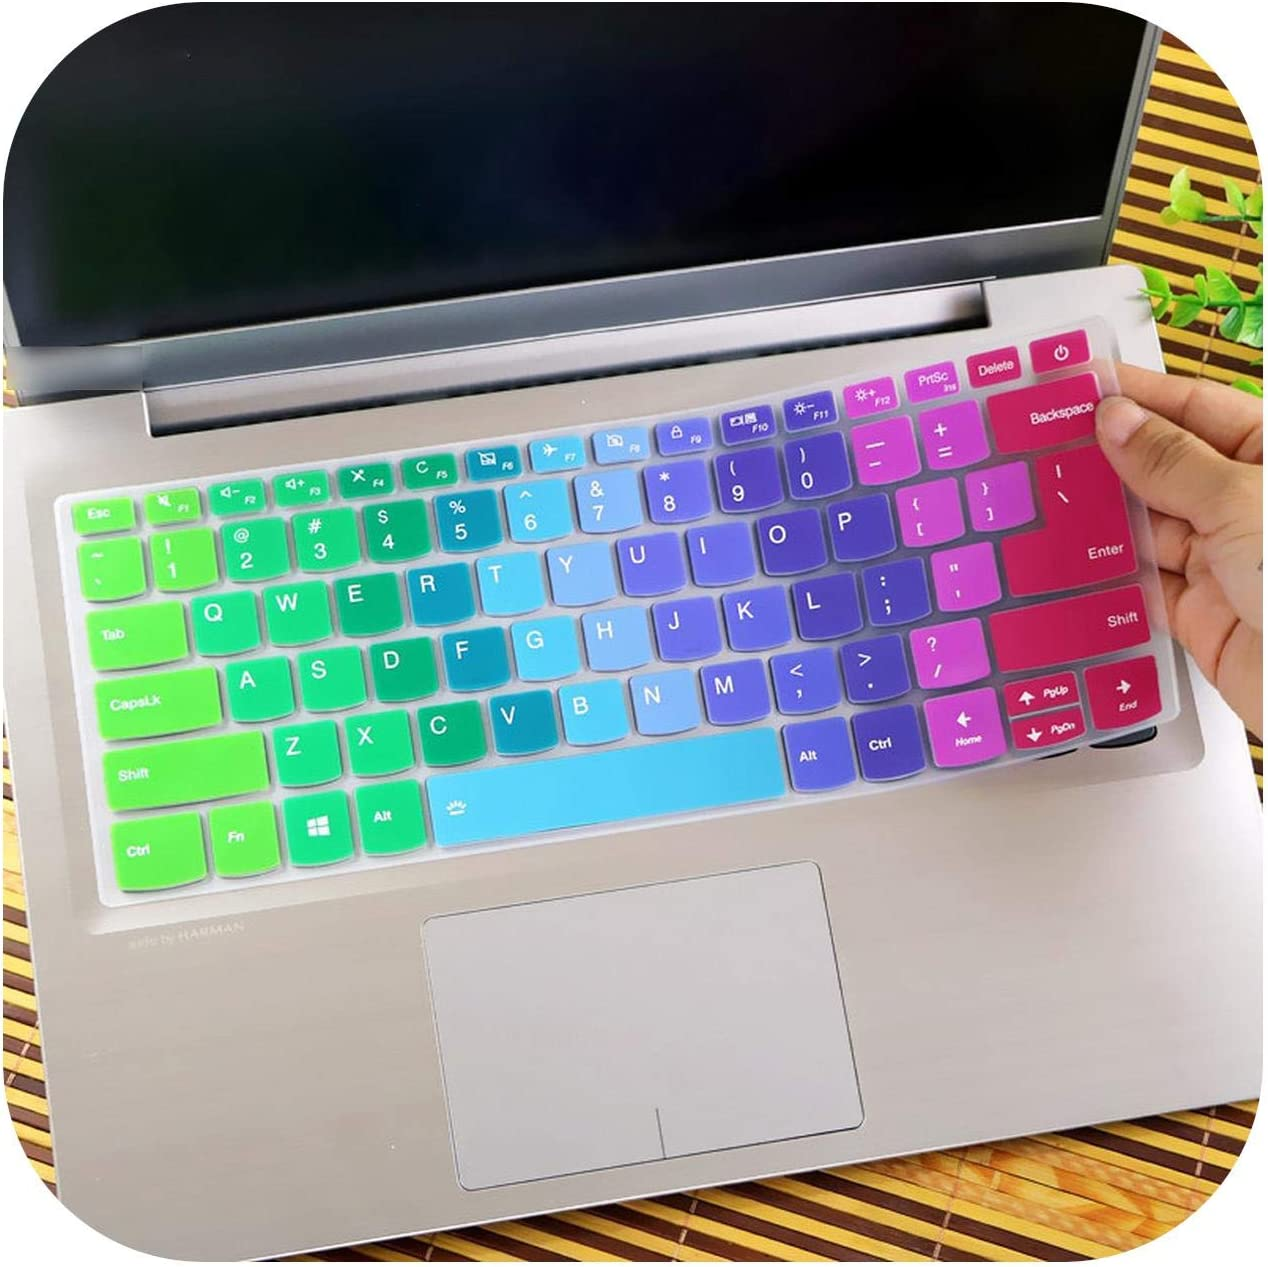 S540 S540 14Iwl Clear 14 Laptop Keyboard Cover Skin Protector for Lenovo Ideapad S340 14Iwl S340 14Iwl 14 Inch S 340 S340 14